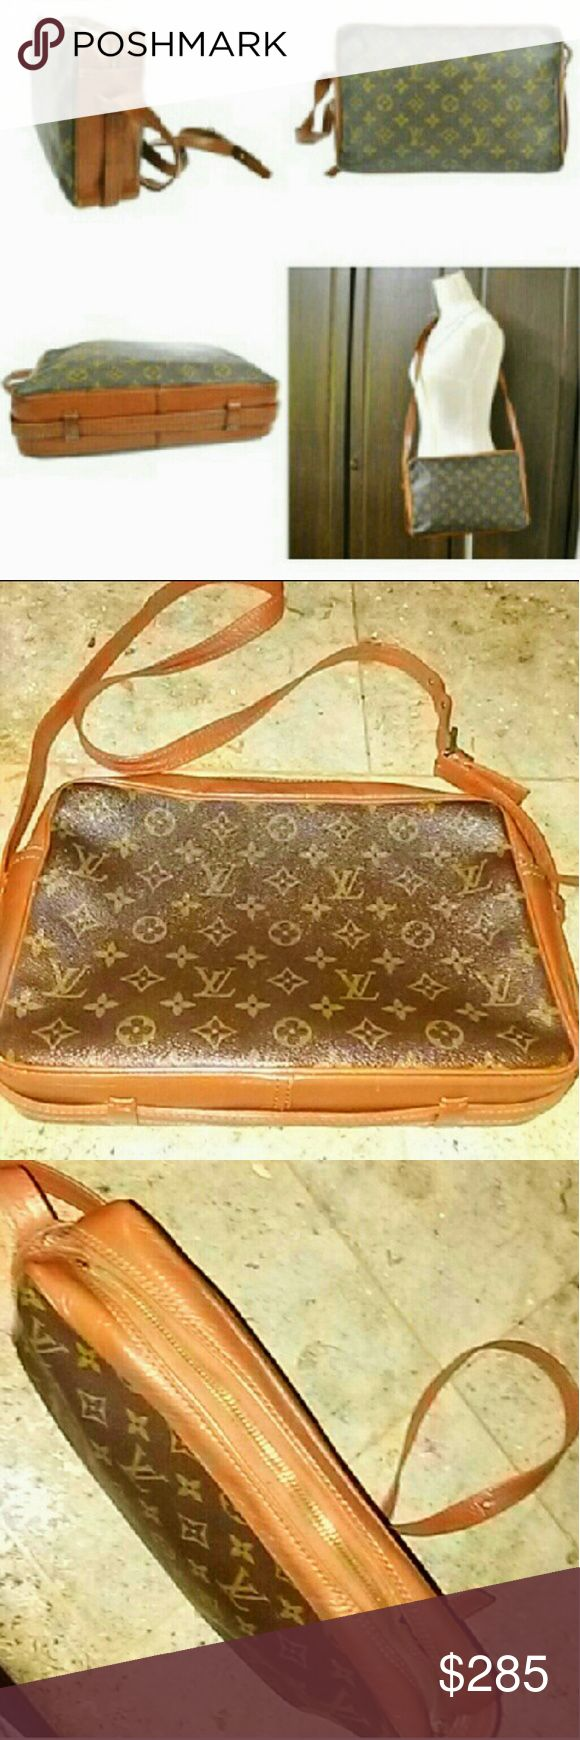 LV Bandouliere Crossbody Authentic LOUIS VUITTON Vintage Sac Bandouliere monogram canvas shoulder bag crossbody purse  Pre Date Code (1980s) Great condition! No pilling in pockets or interior  1* flaw zipper needs to be replaced  Still open & closes  This Does NOT take away from the Beauty or functionality of this piece. Louis Vuitton Bags Shoulder Bags